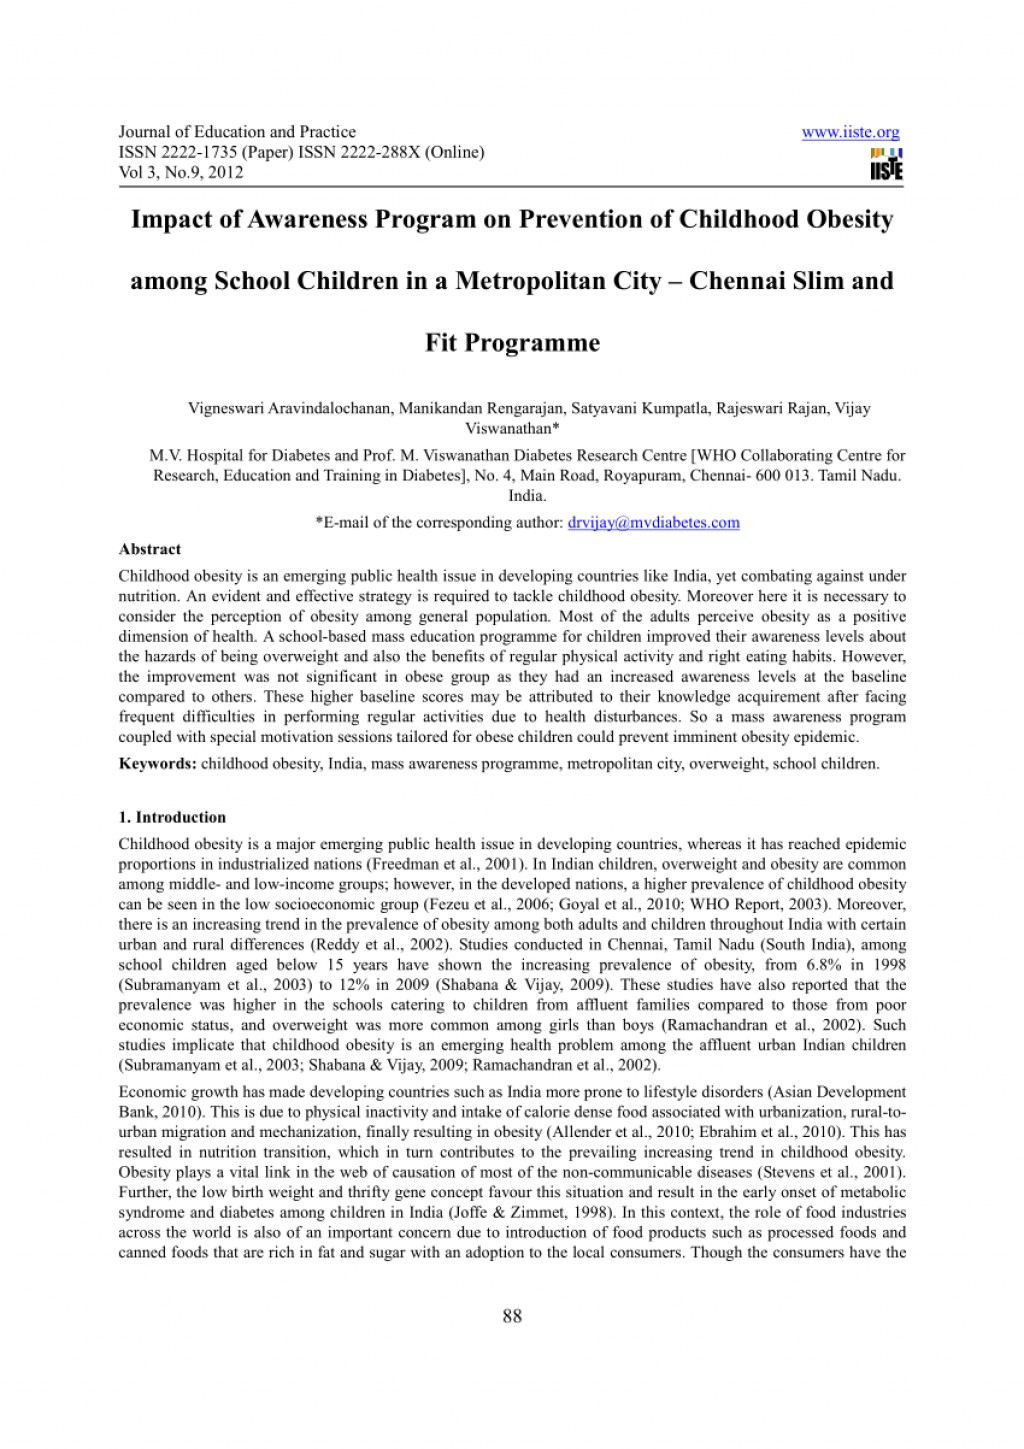 003 Childhood Obesity Research Paper Abstract Formidable Large